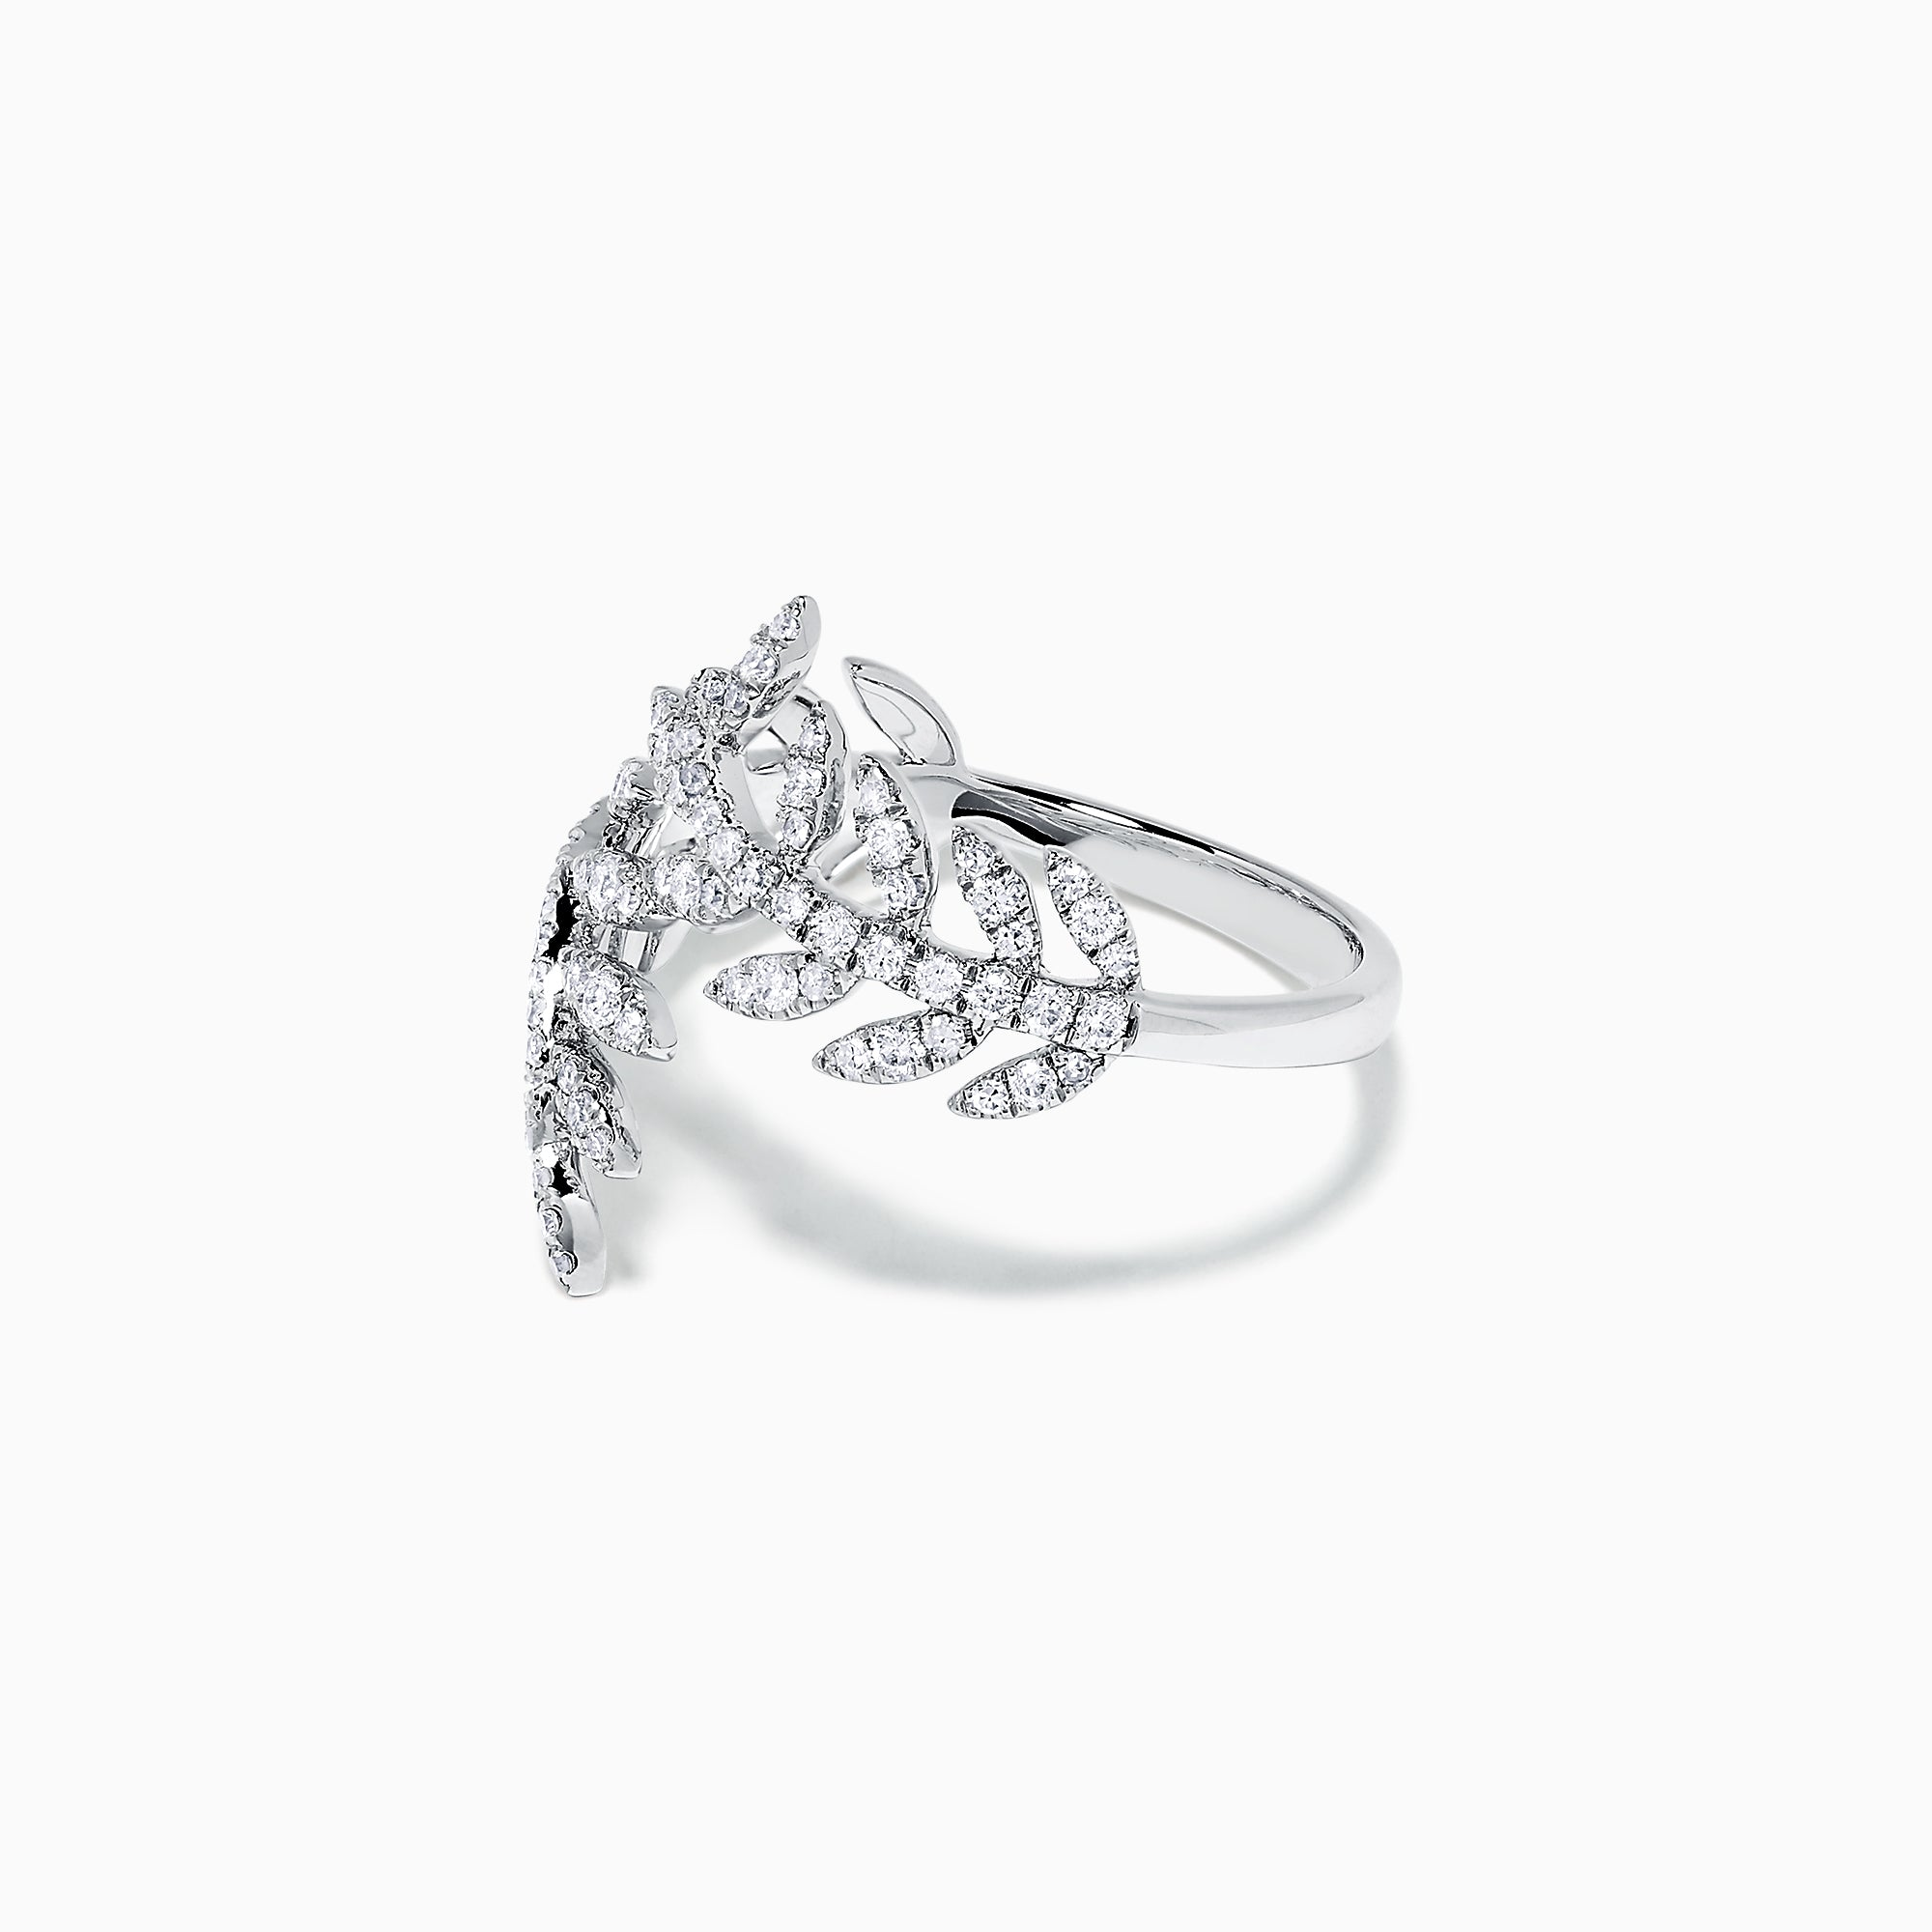 Effy Pave Classica 14K White Gold Diamond Leaf Ring, 0.53 TCW